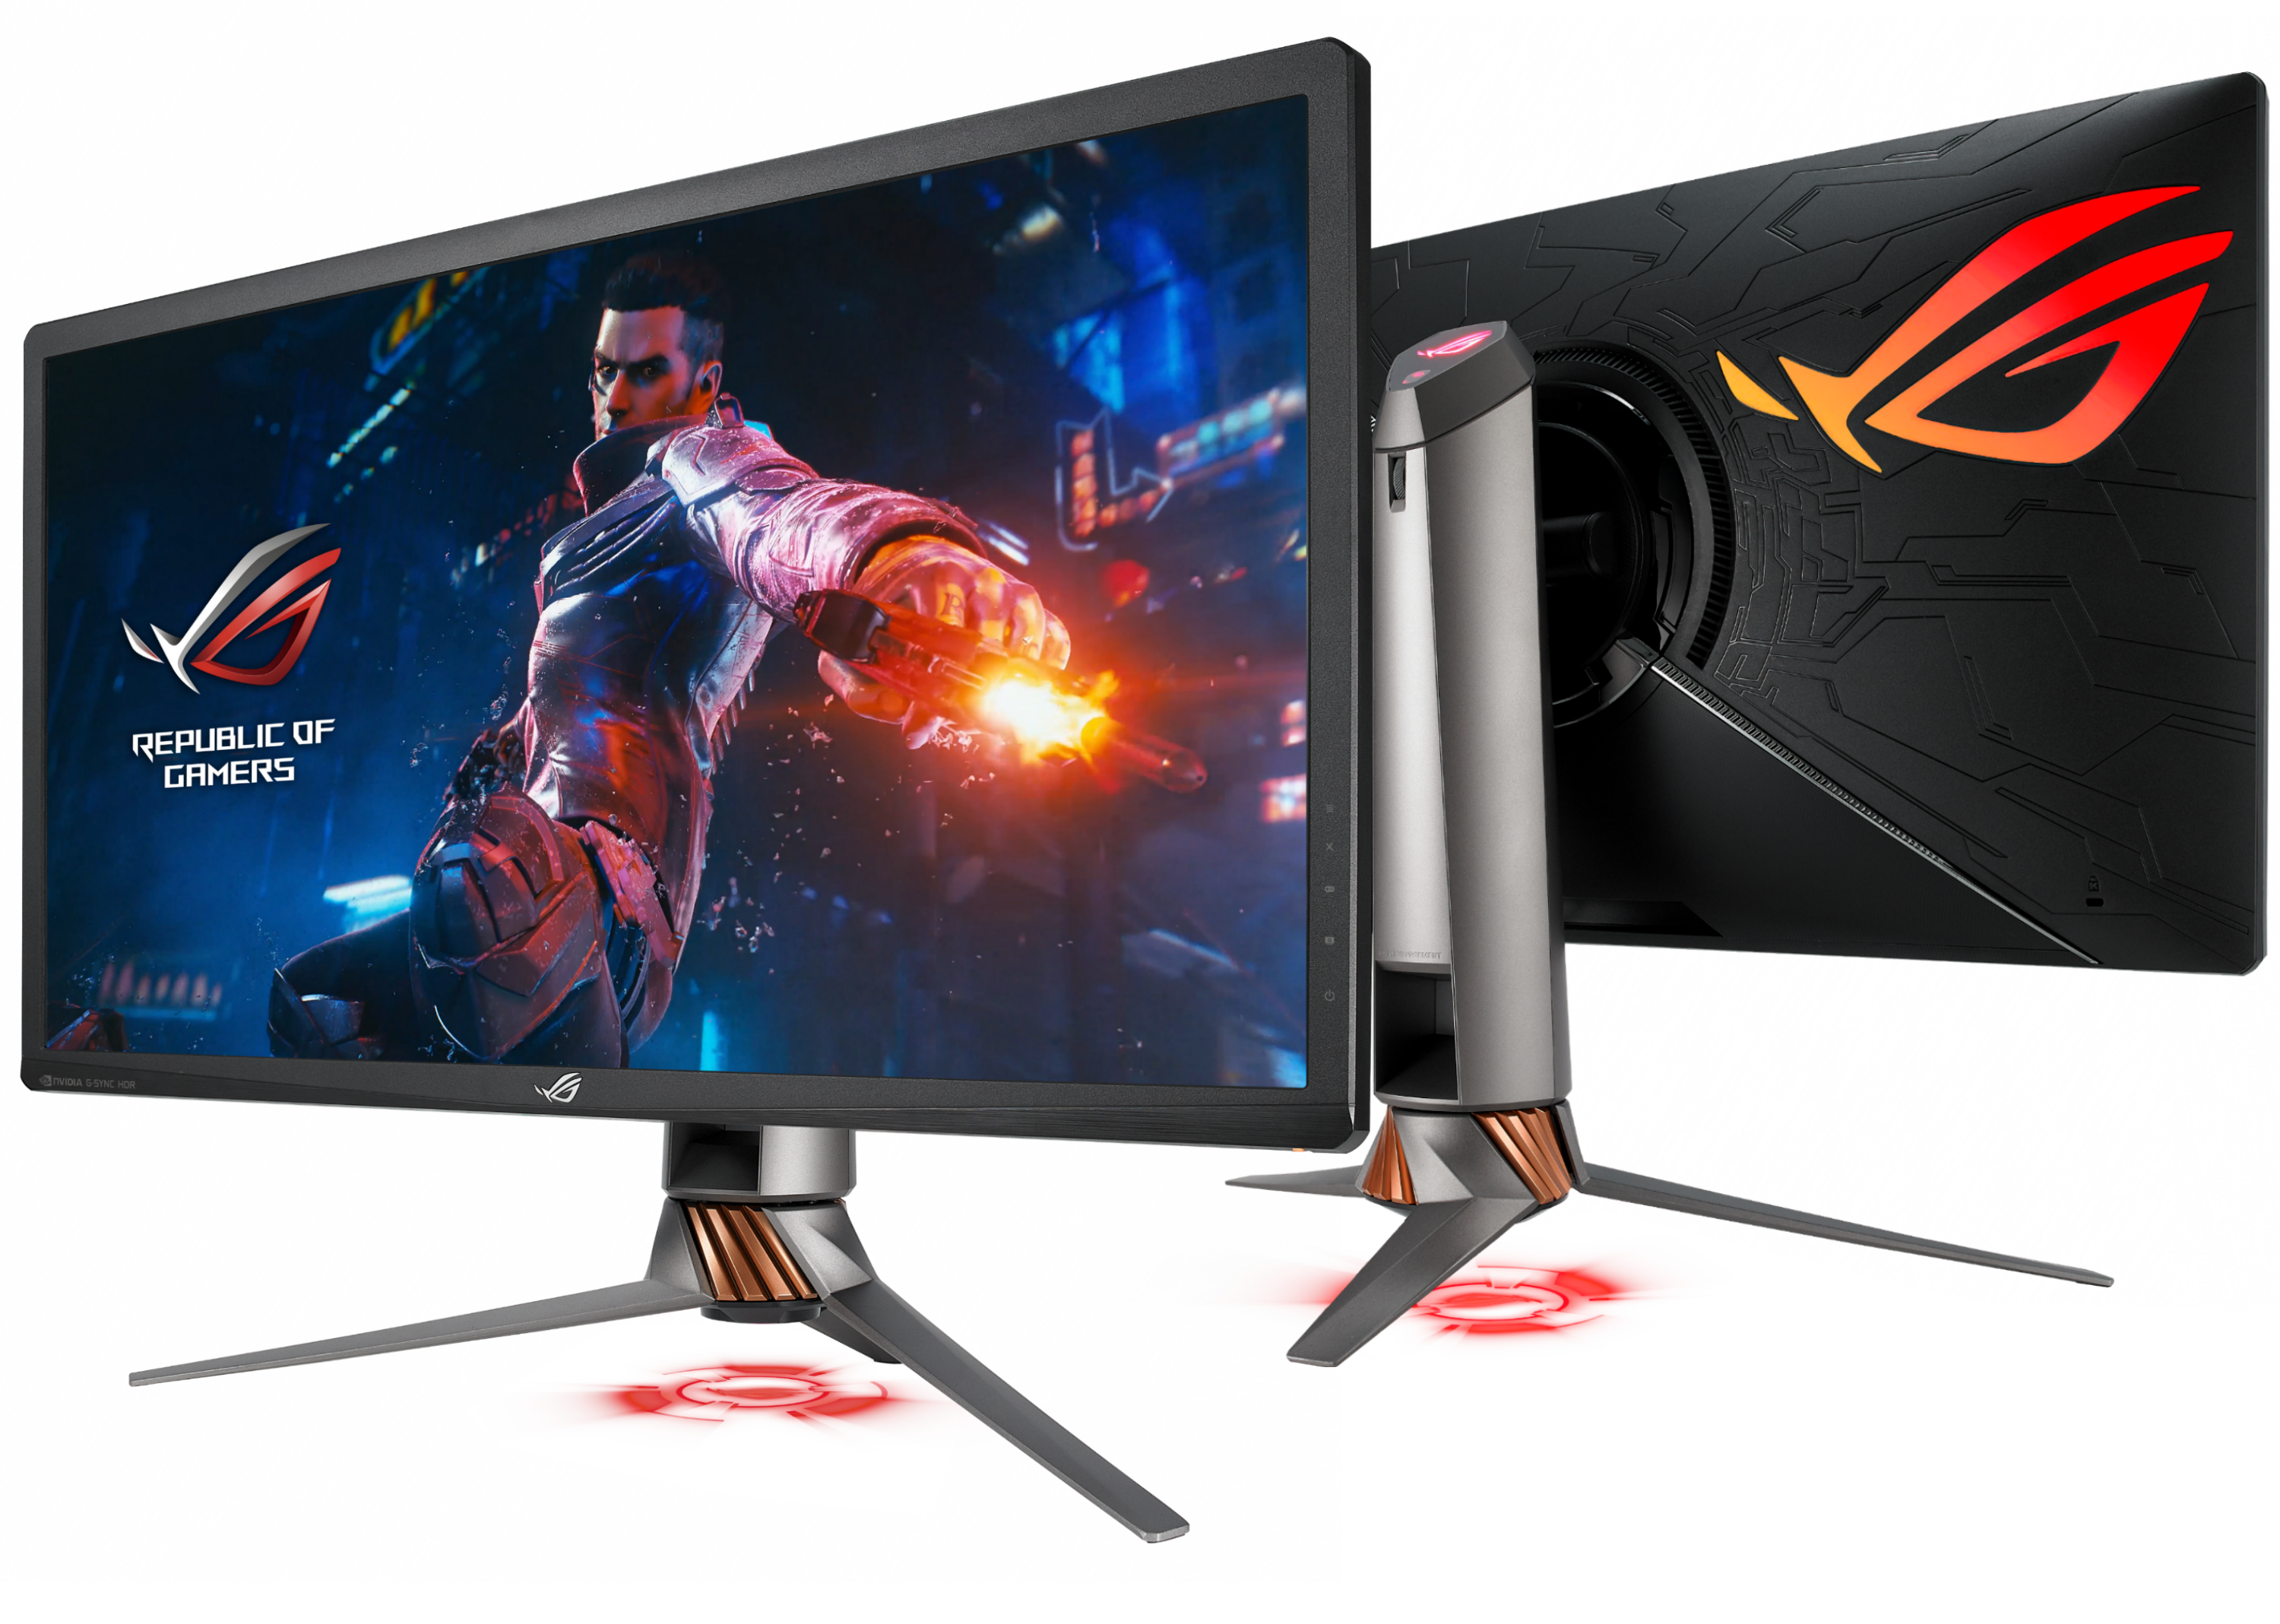 Best G Sync Monitor 2019 G SYNC ULTIMATE Mini LED HDR Monitors Unveiled At Computex 2019